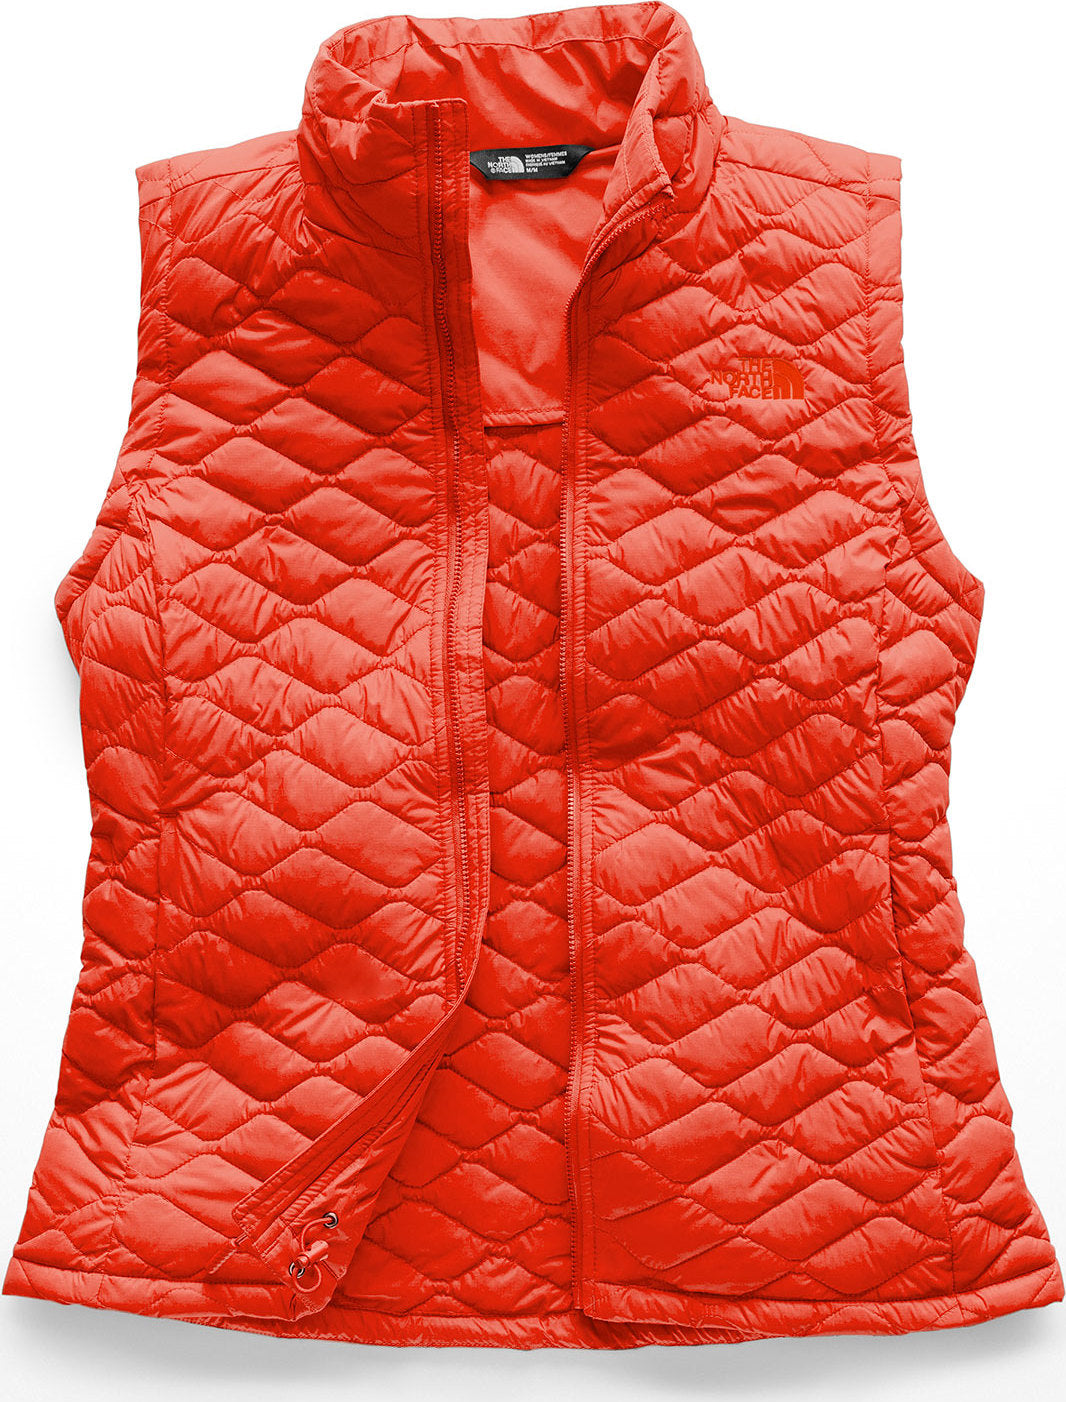 67e7f77099 The North Face Thermoball Vest - Women's   The Last Hunt